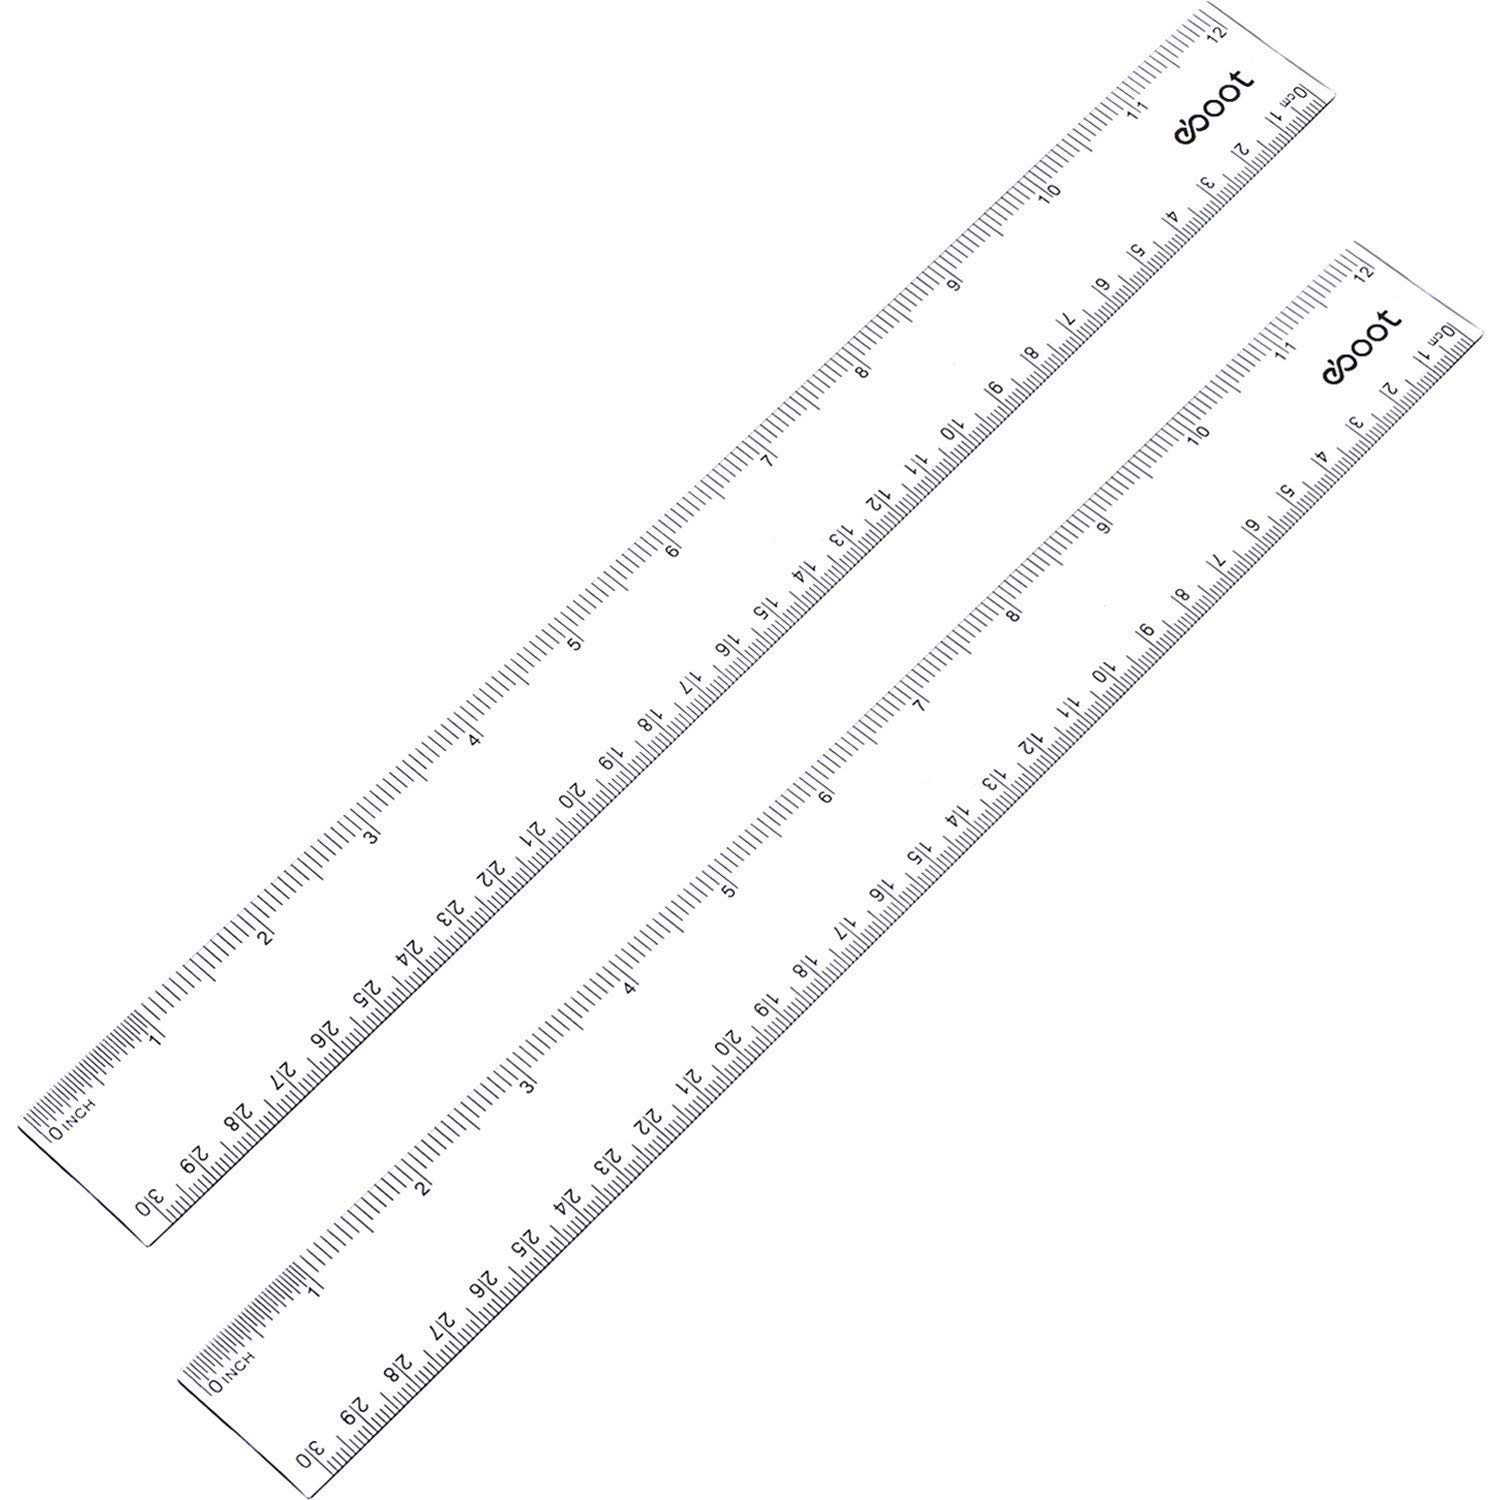 Erica 12 Inches Plastic Ruler Straight Ruler Plastic Measuring Tool for Student School Office, Clear, 2 Pack